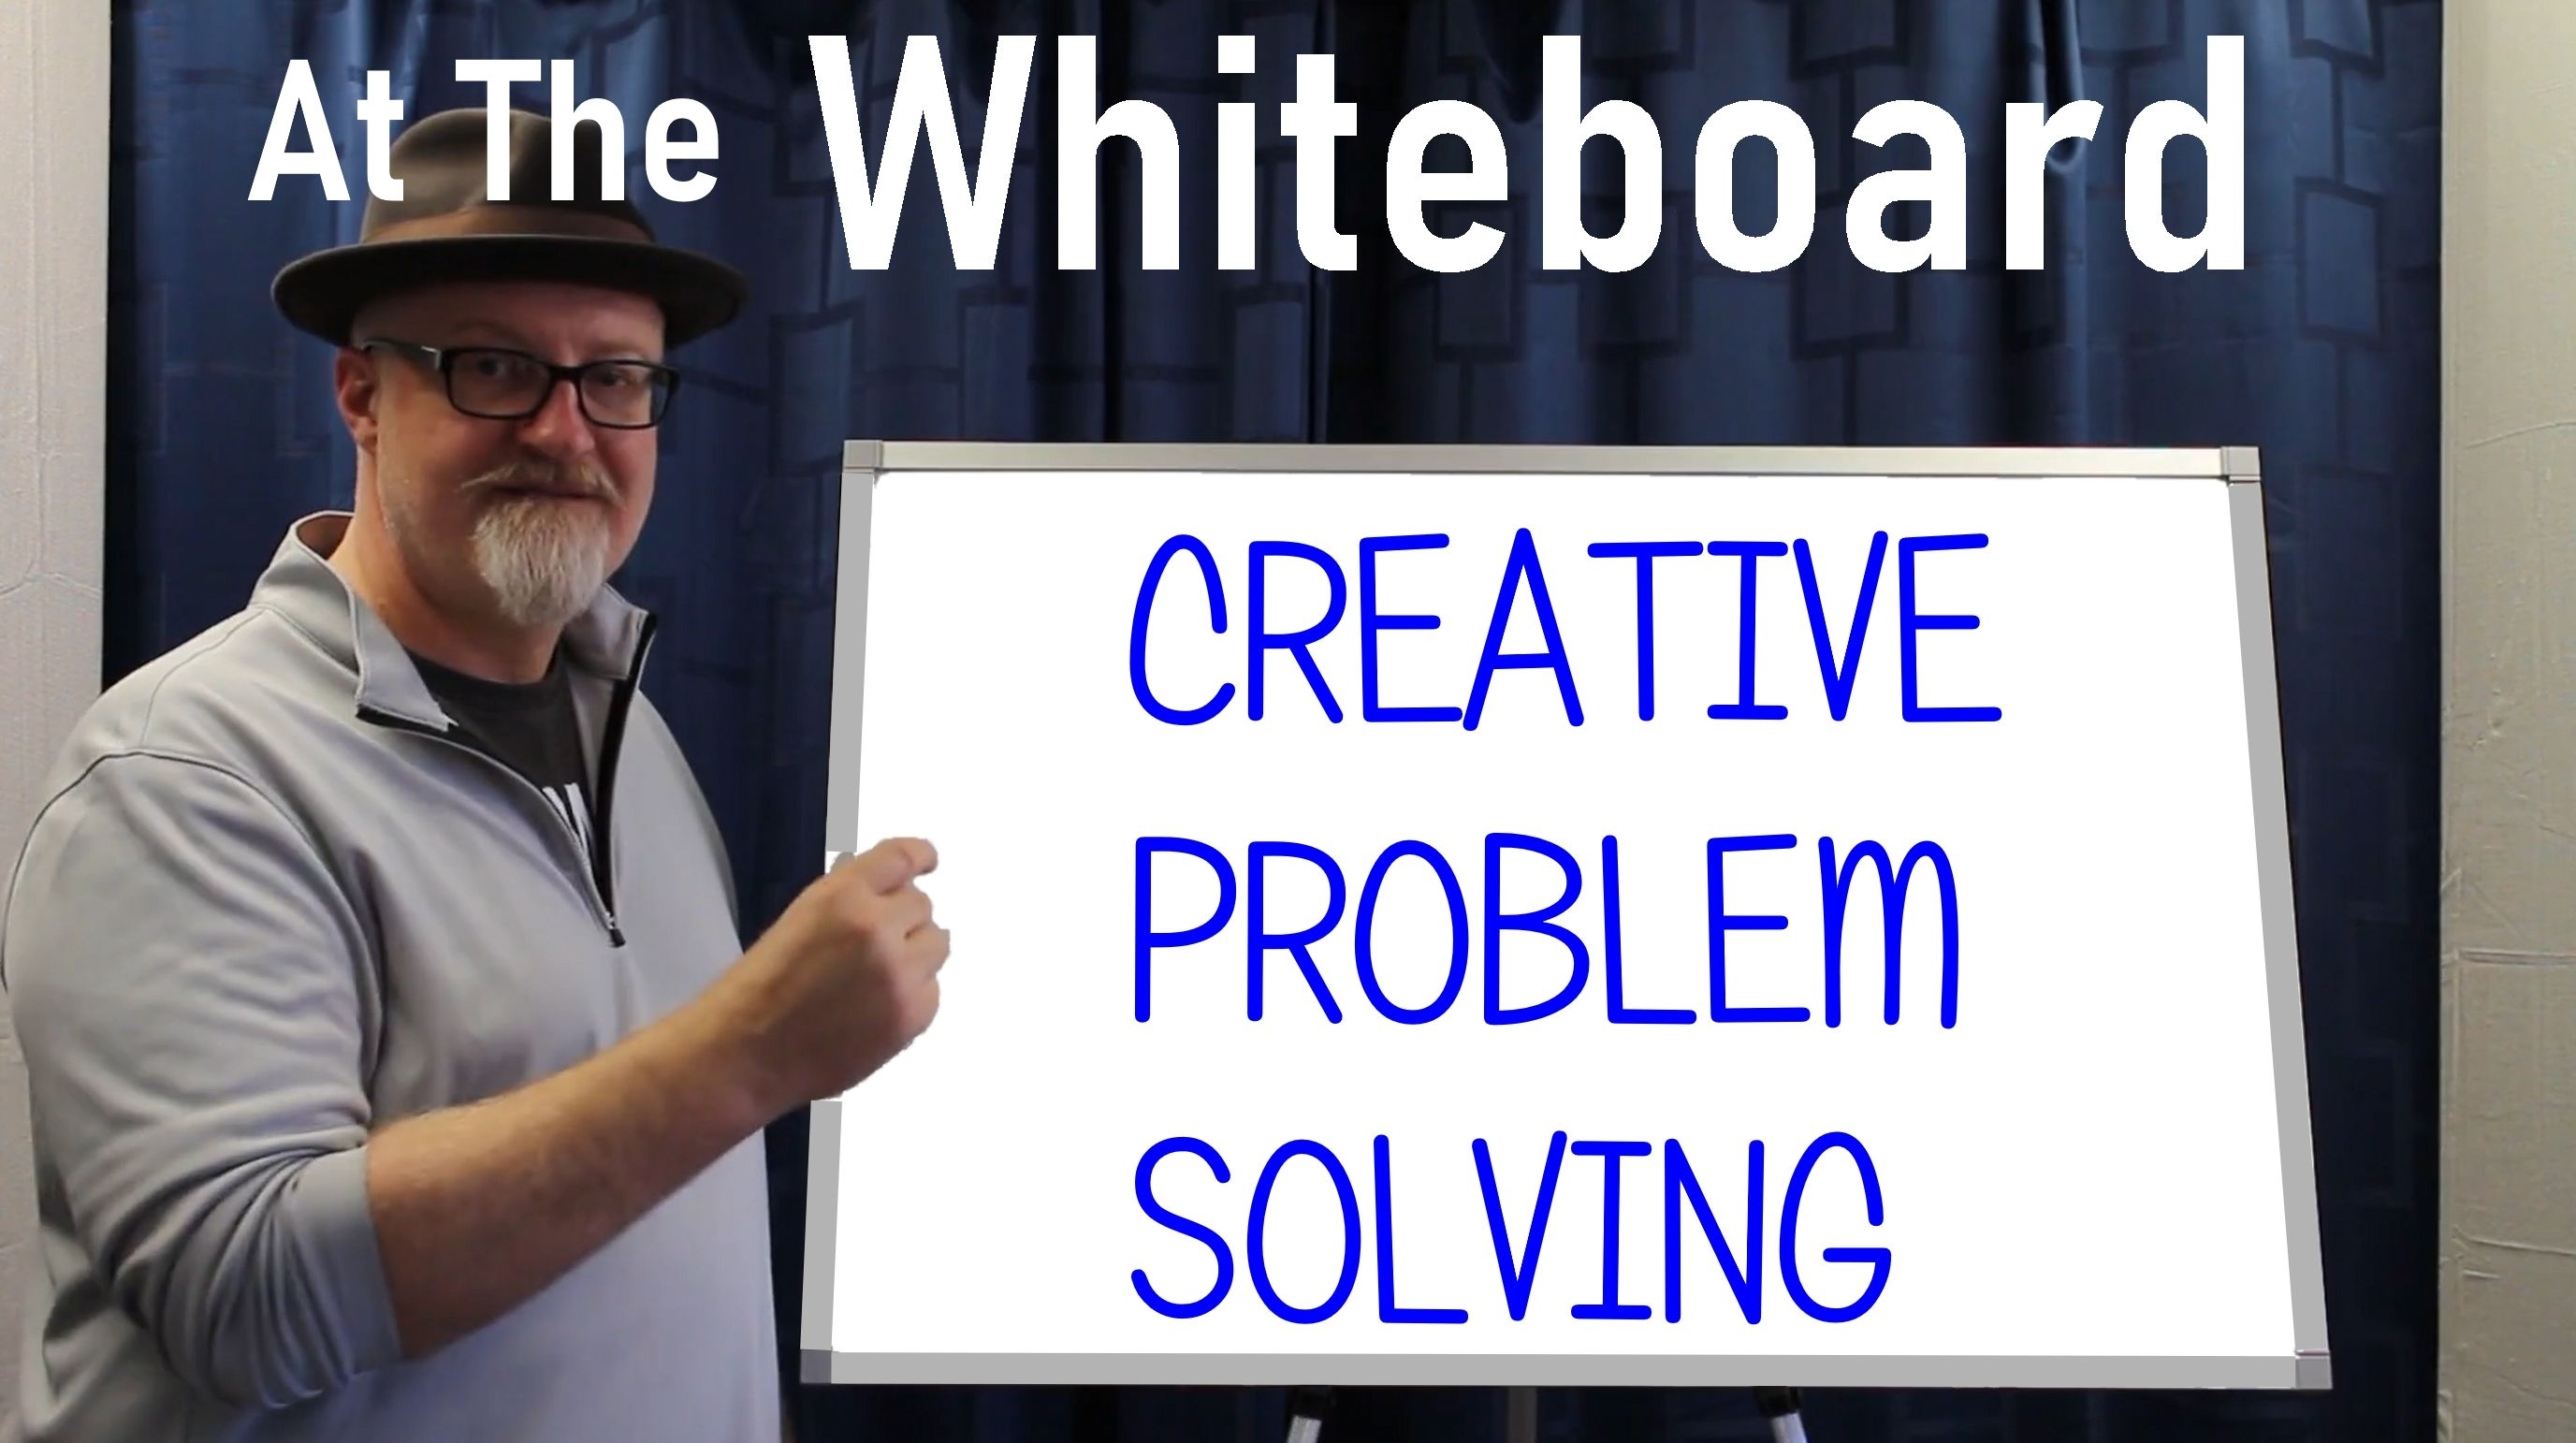 WHITE BOARD CREATIVE PROBLEM SOLVING